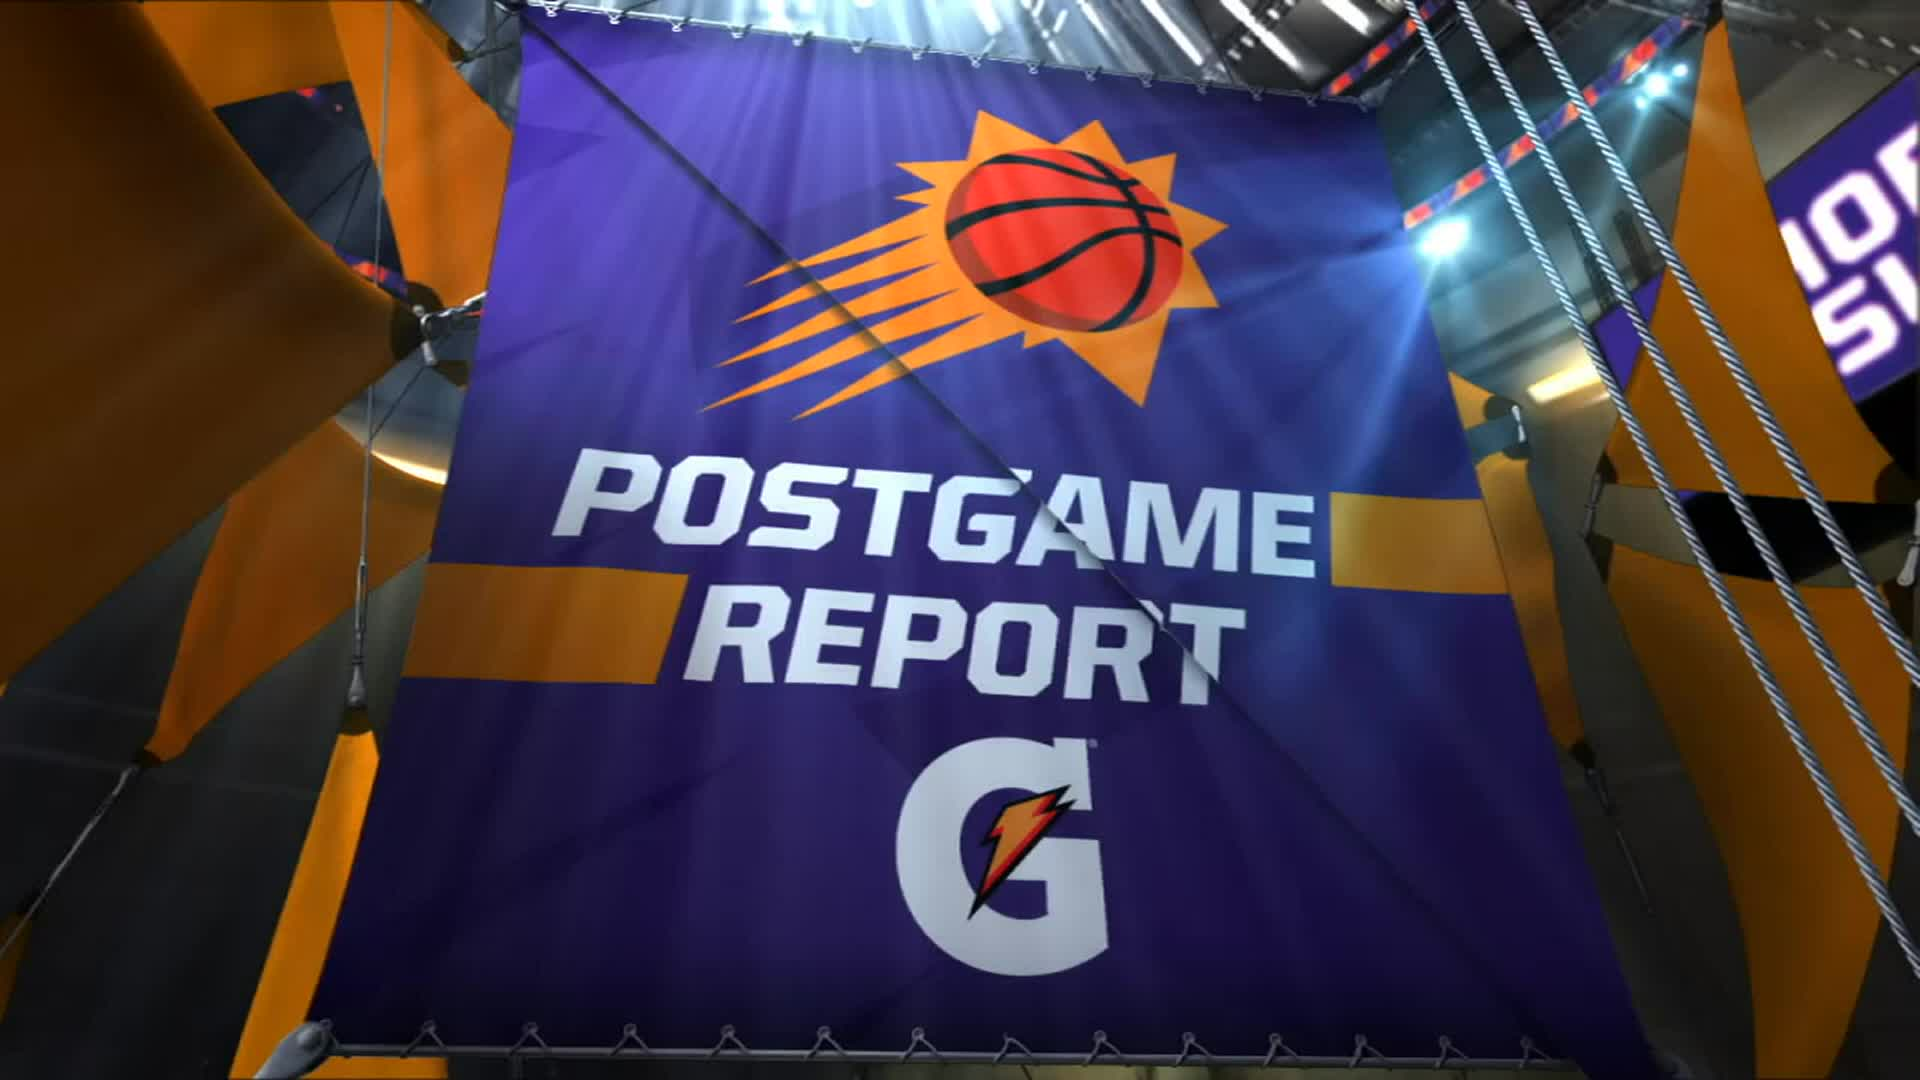 Gatorade Postgame Report: Suns vs. Rockets 2020-21